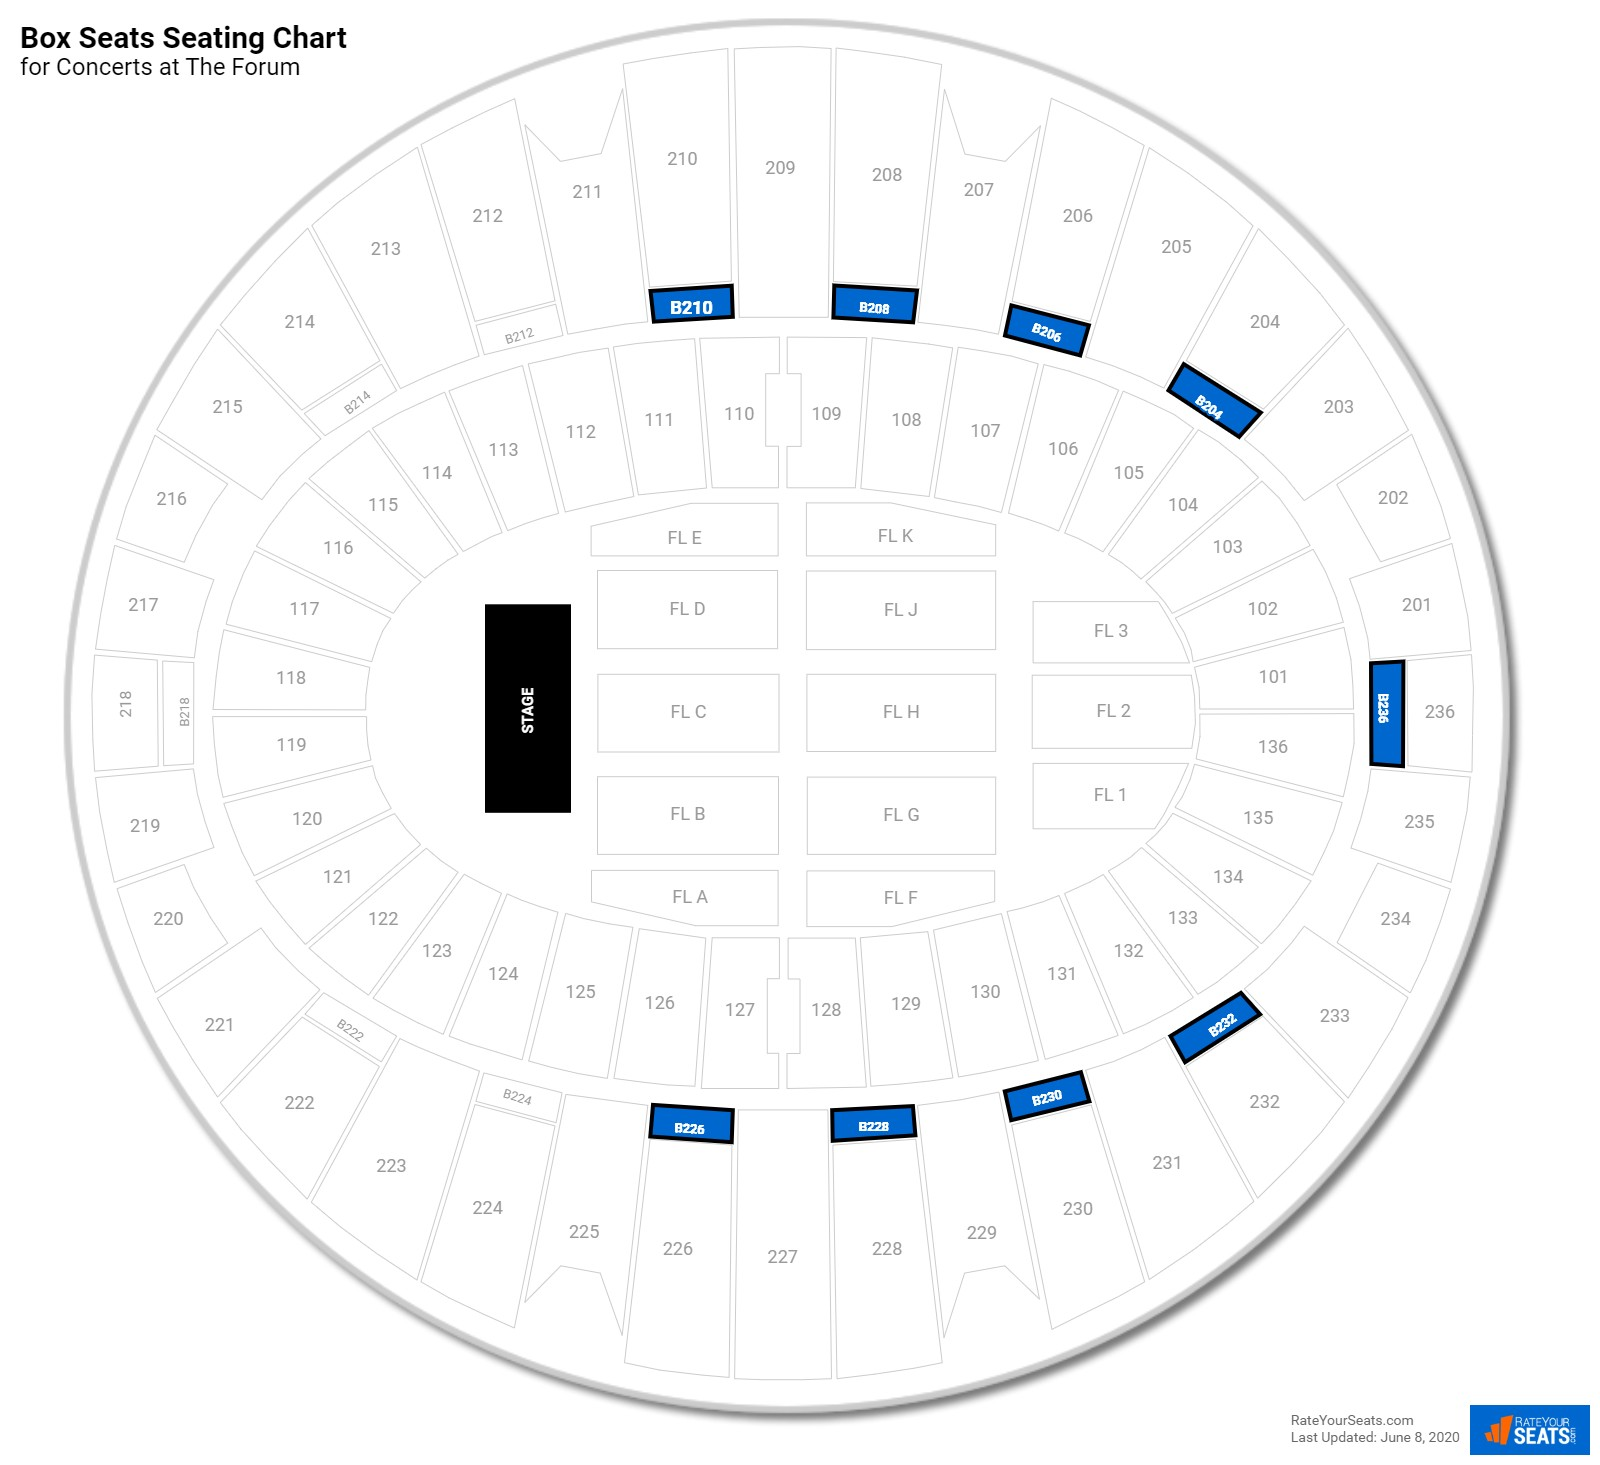 Box Seats Seating Chart